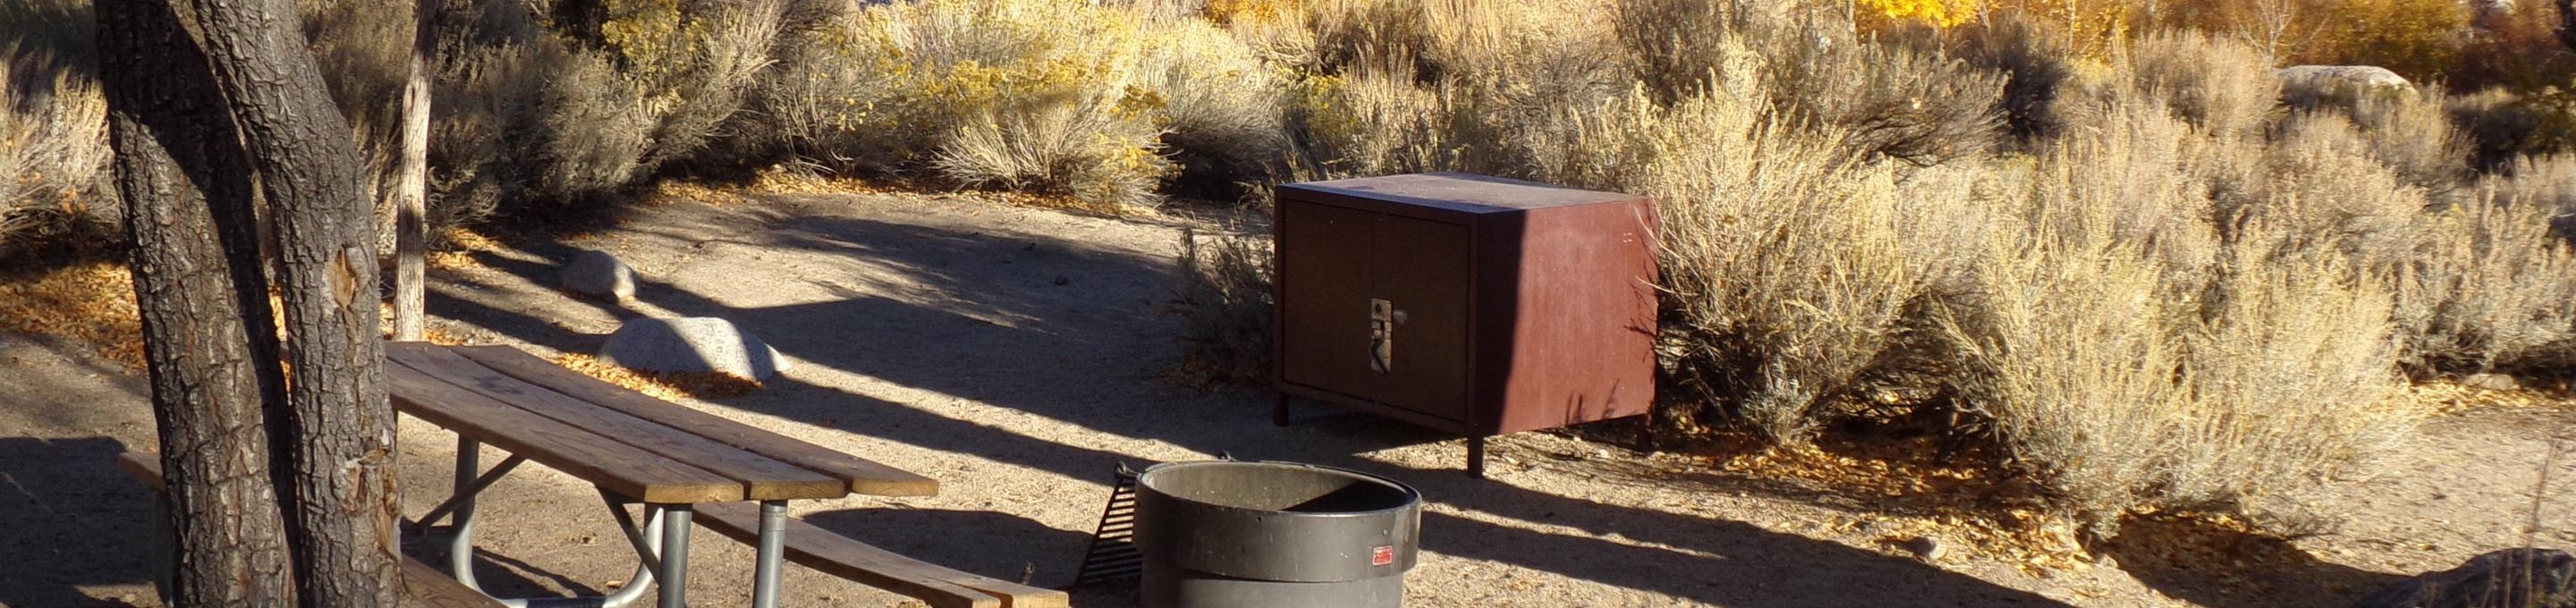 Lone Pine Campground site #28 featuring picnic area, food storage, and fire pit.